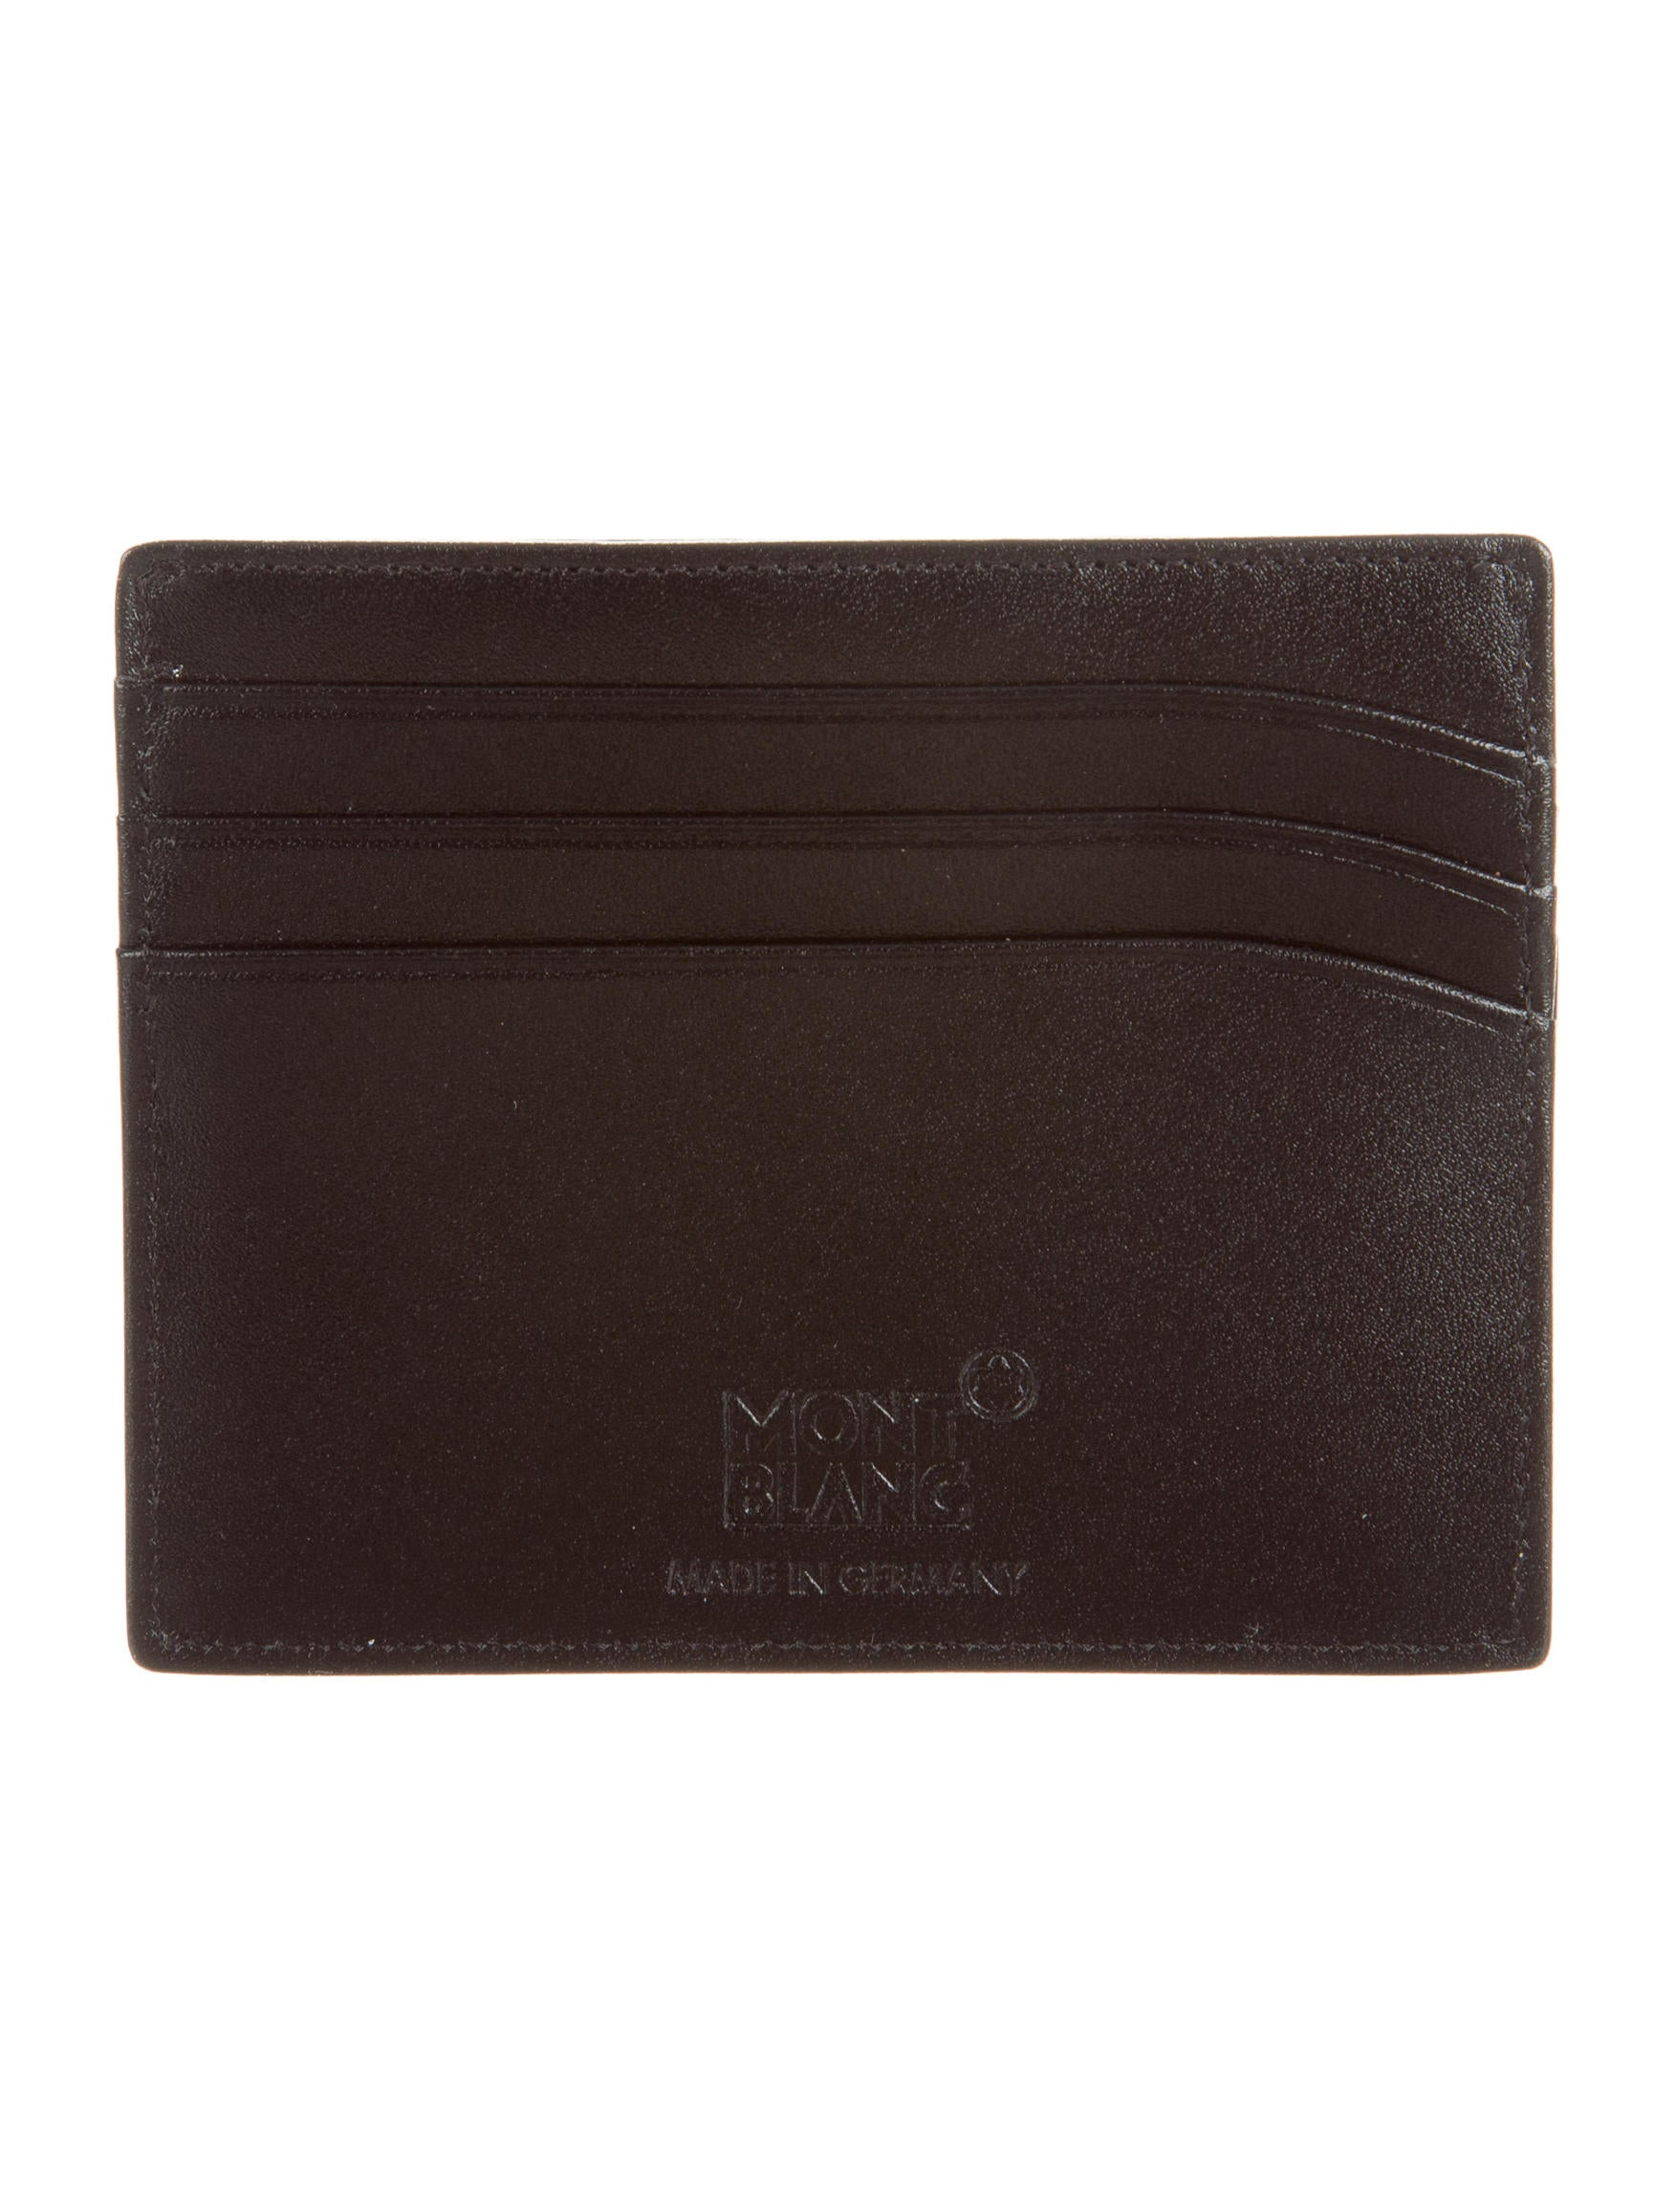 Mont Blanc Meisterst252ck Leather Card Holder Accessories  : MOB203223enlarged from www.therealreal.com size 1753 x 2313 jpeg 286kB